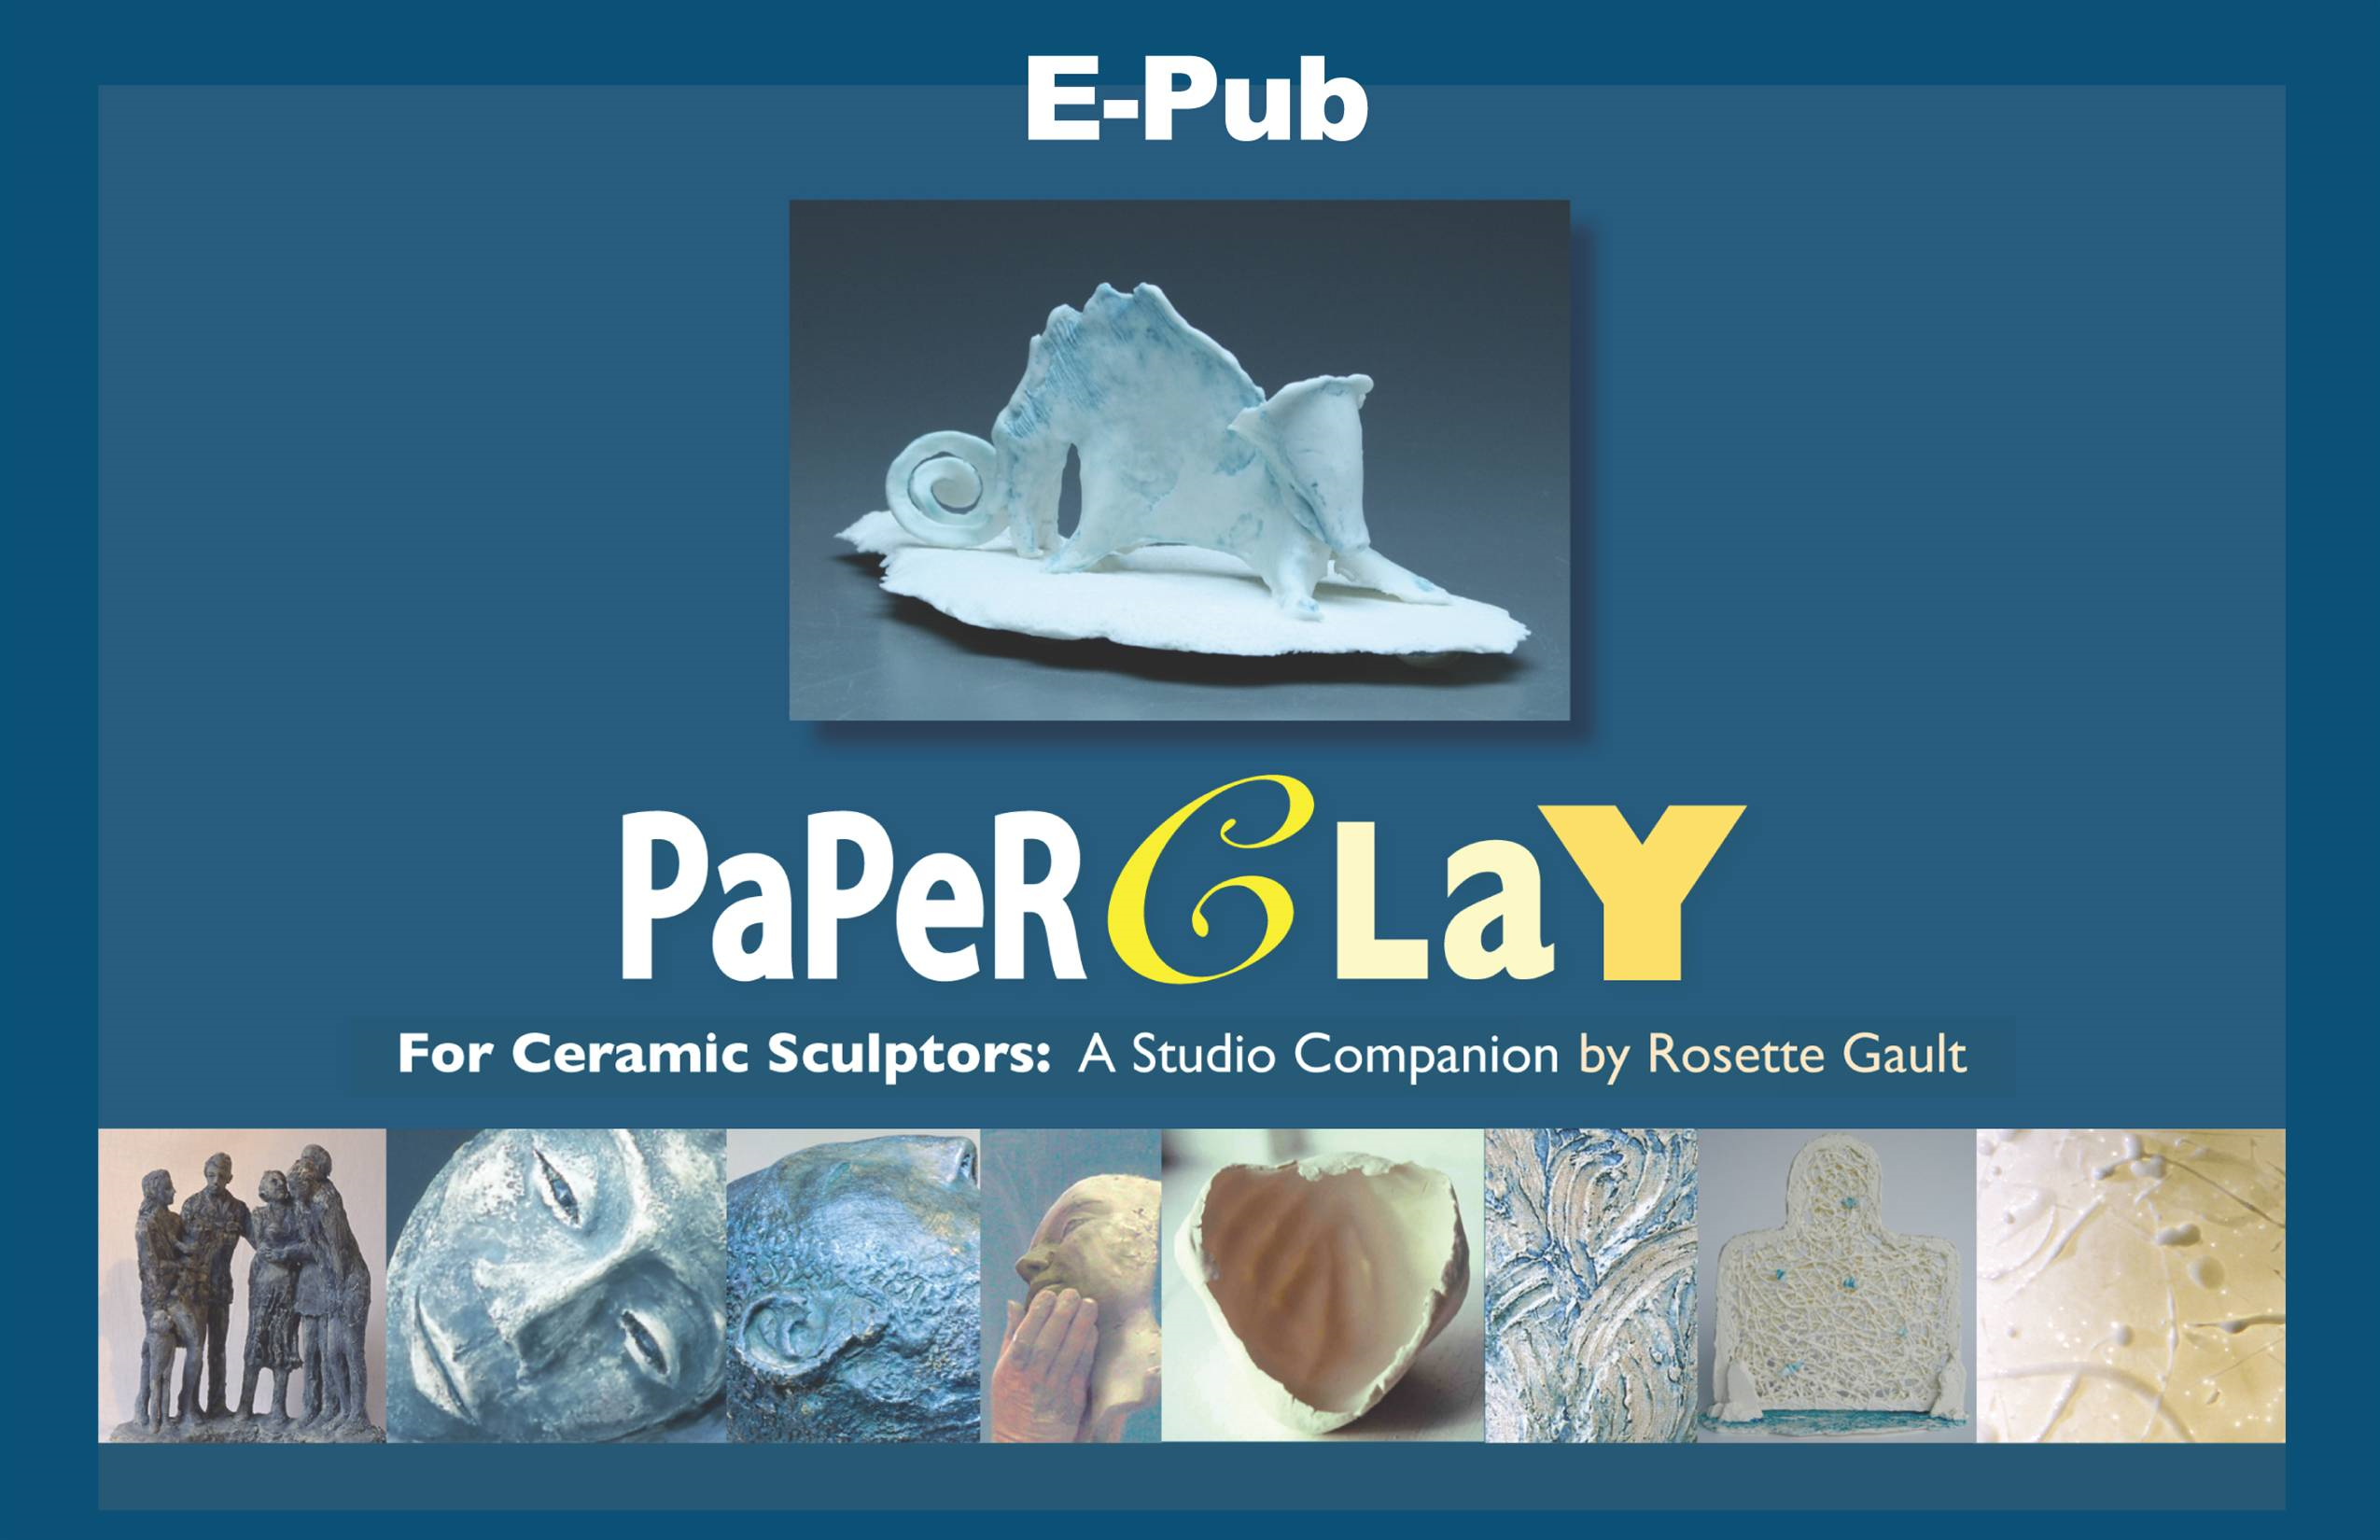 Paperclay for Ceramic Sculptors: A Studio Companion